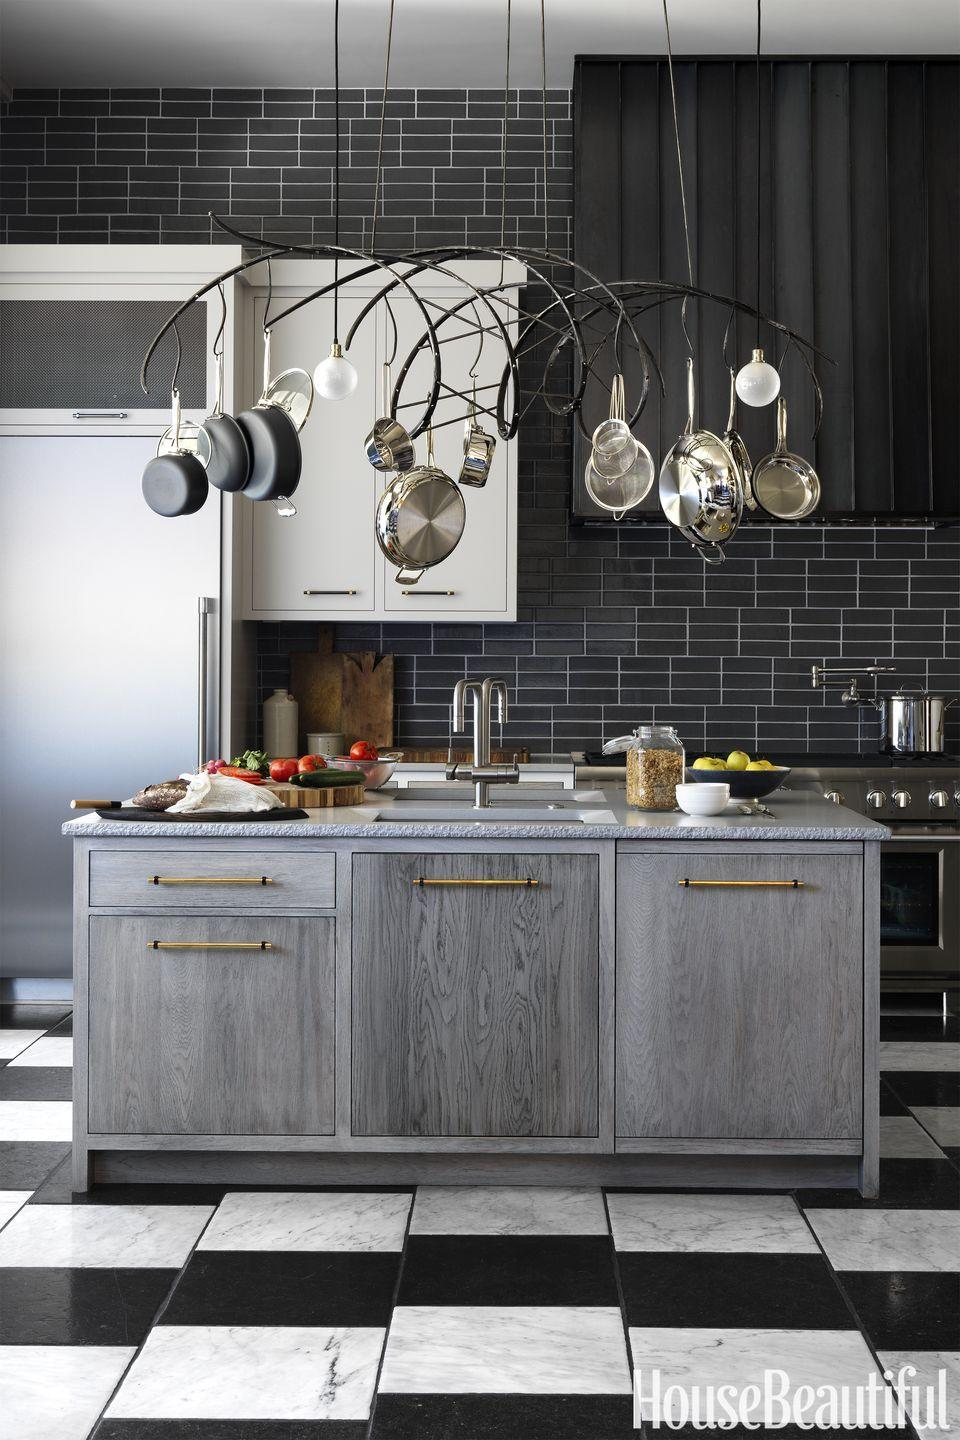 "<p>A glazed backsplash and weathered oak island feel sleek and sexy in this <span class=""redactor-unlink"">kitchen by Jon de la Cruz</span>. Plus, the hanging rack is functional <em>and</em> stylish. If you love the monochrome look but want a little more soul, take note. </p>"